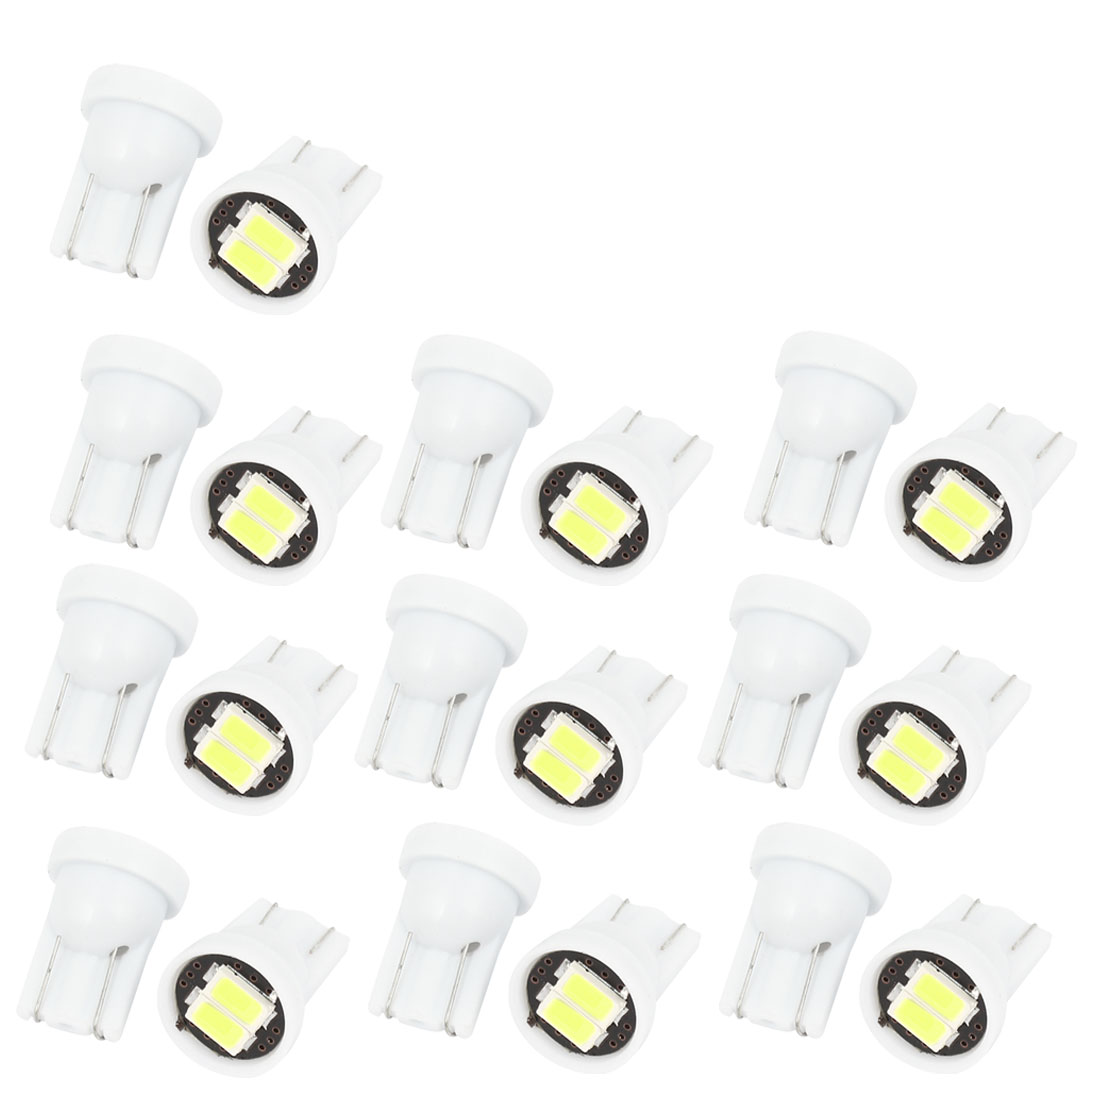 20 Pcs Car T10 W5W 2 5630 SMD LED Signal Bulb Light Turning Lamp DC 12V